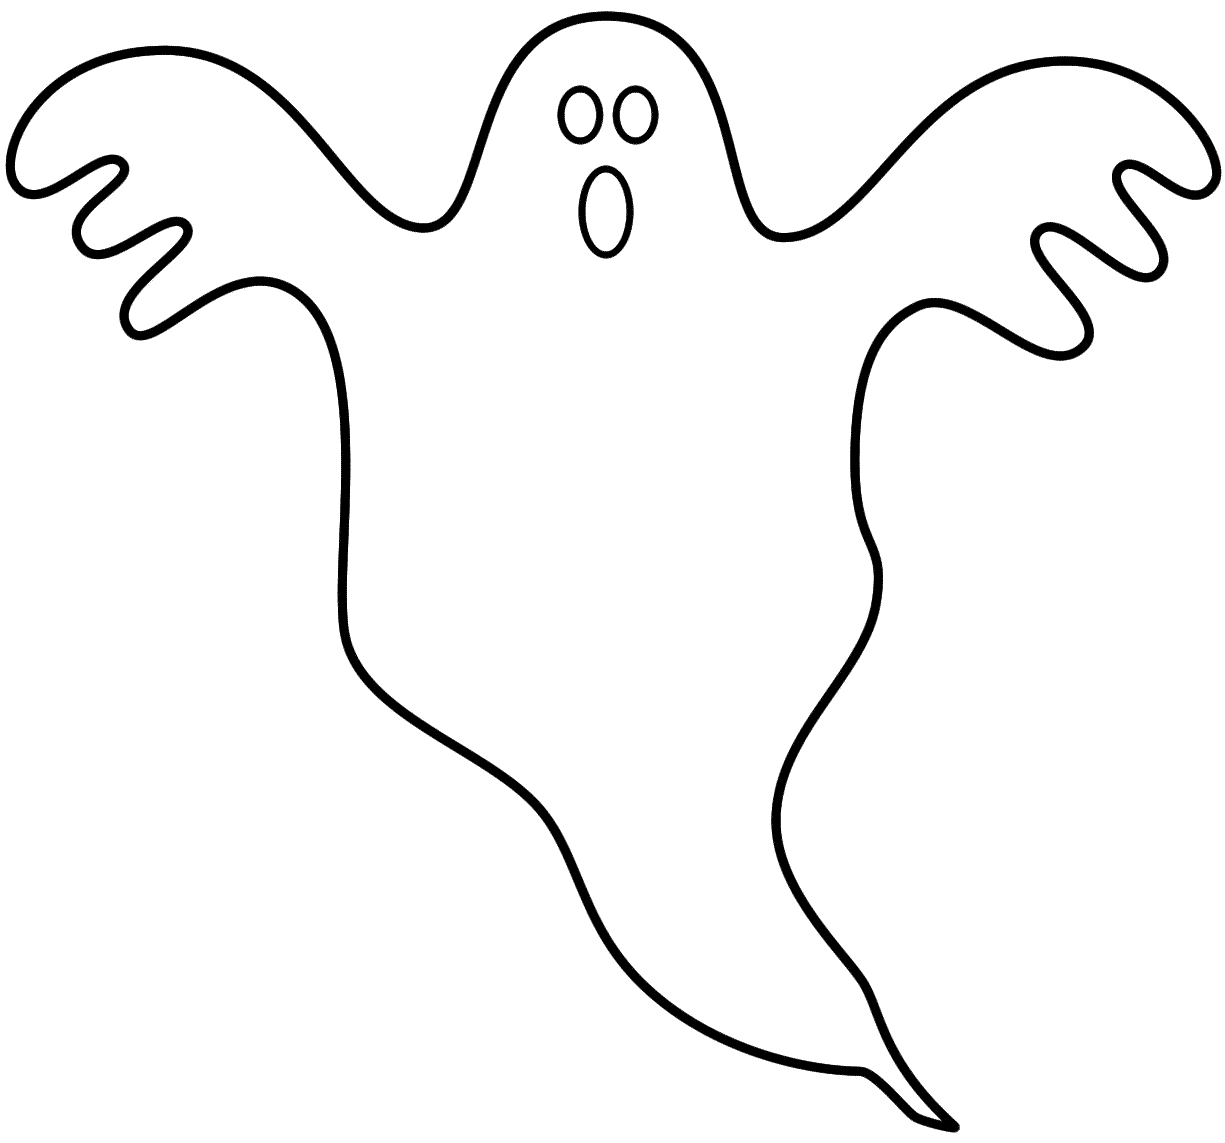 Ghost coloring pages to download